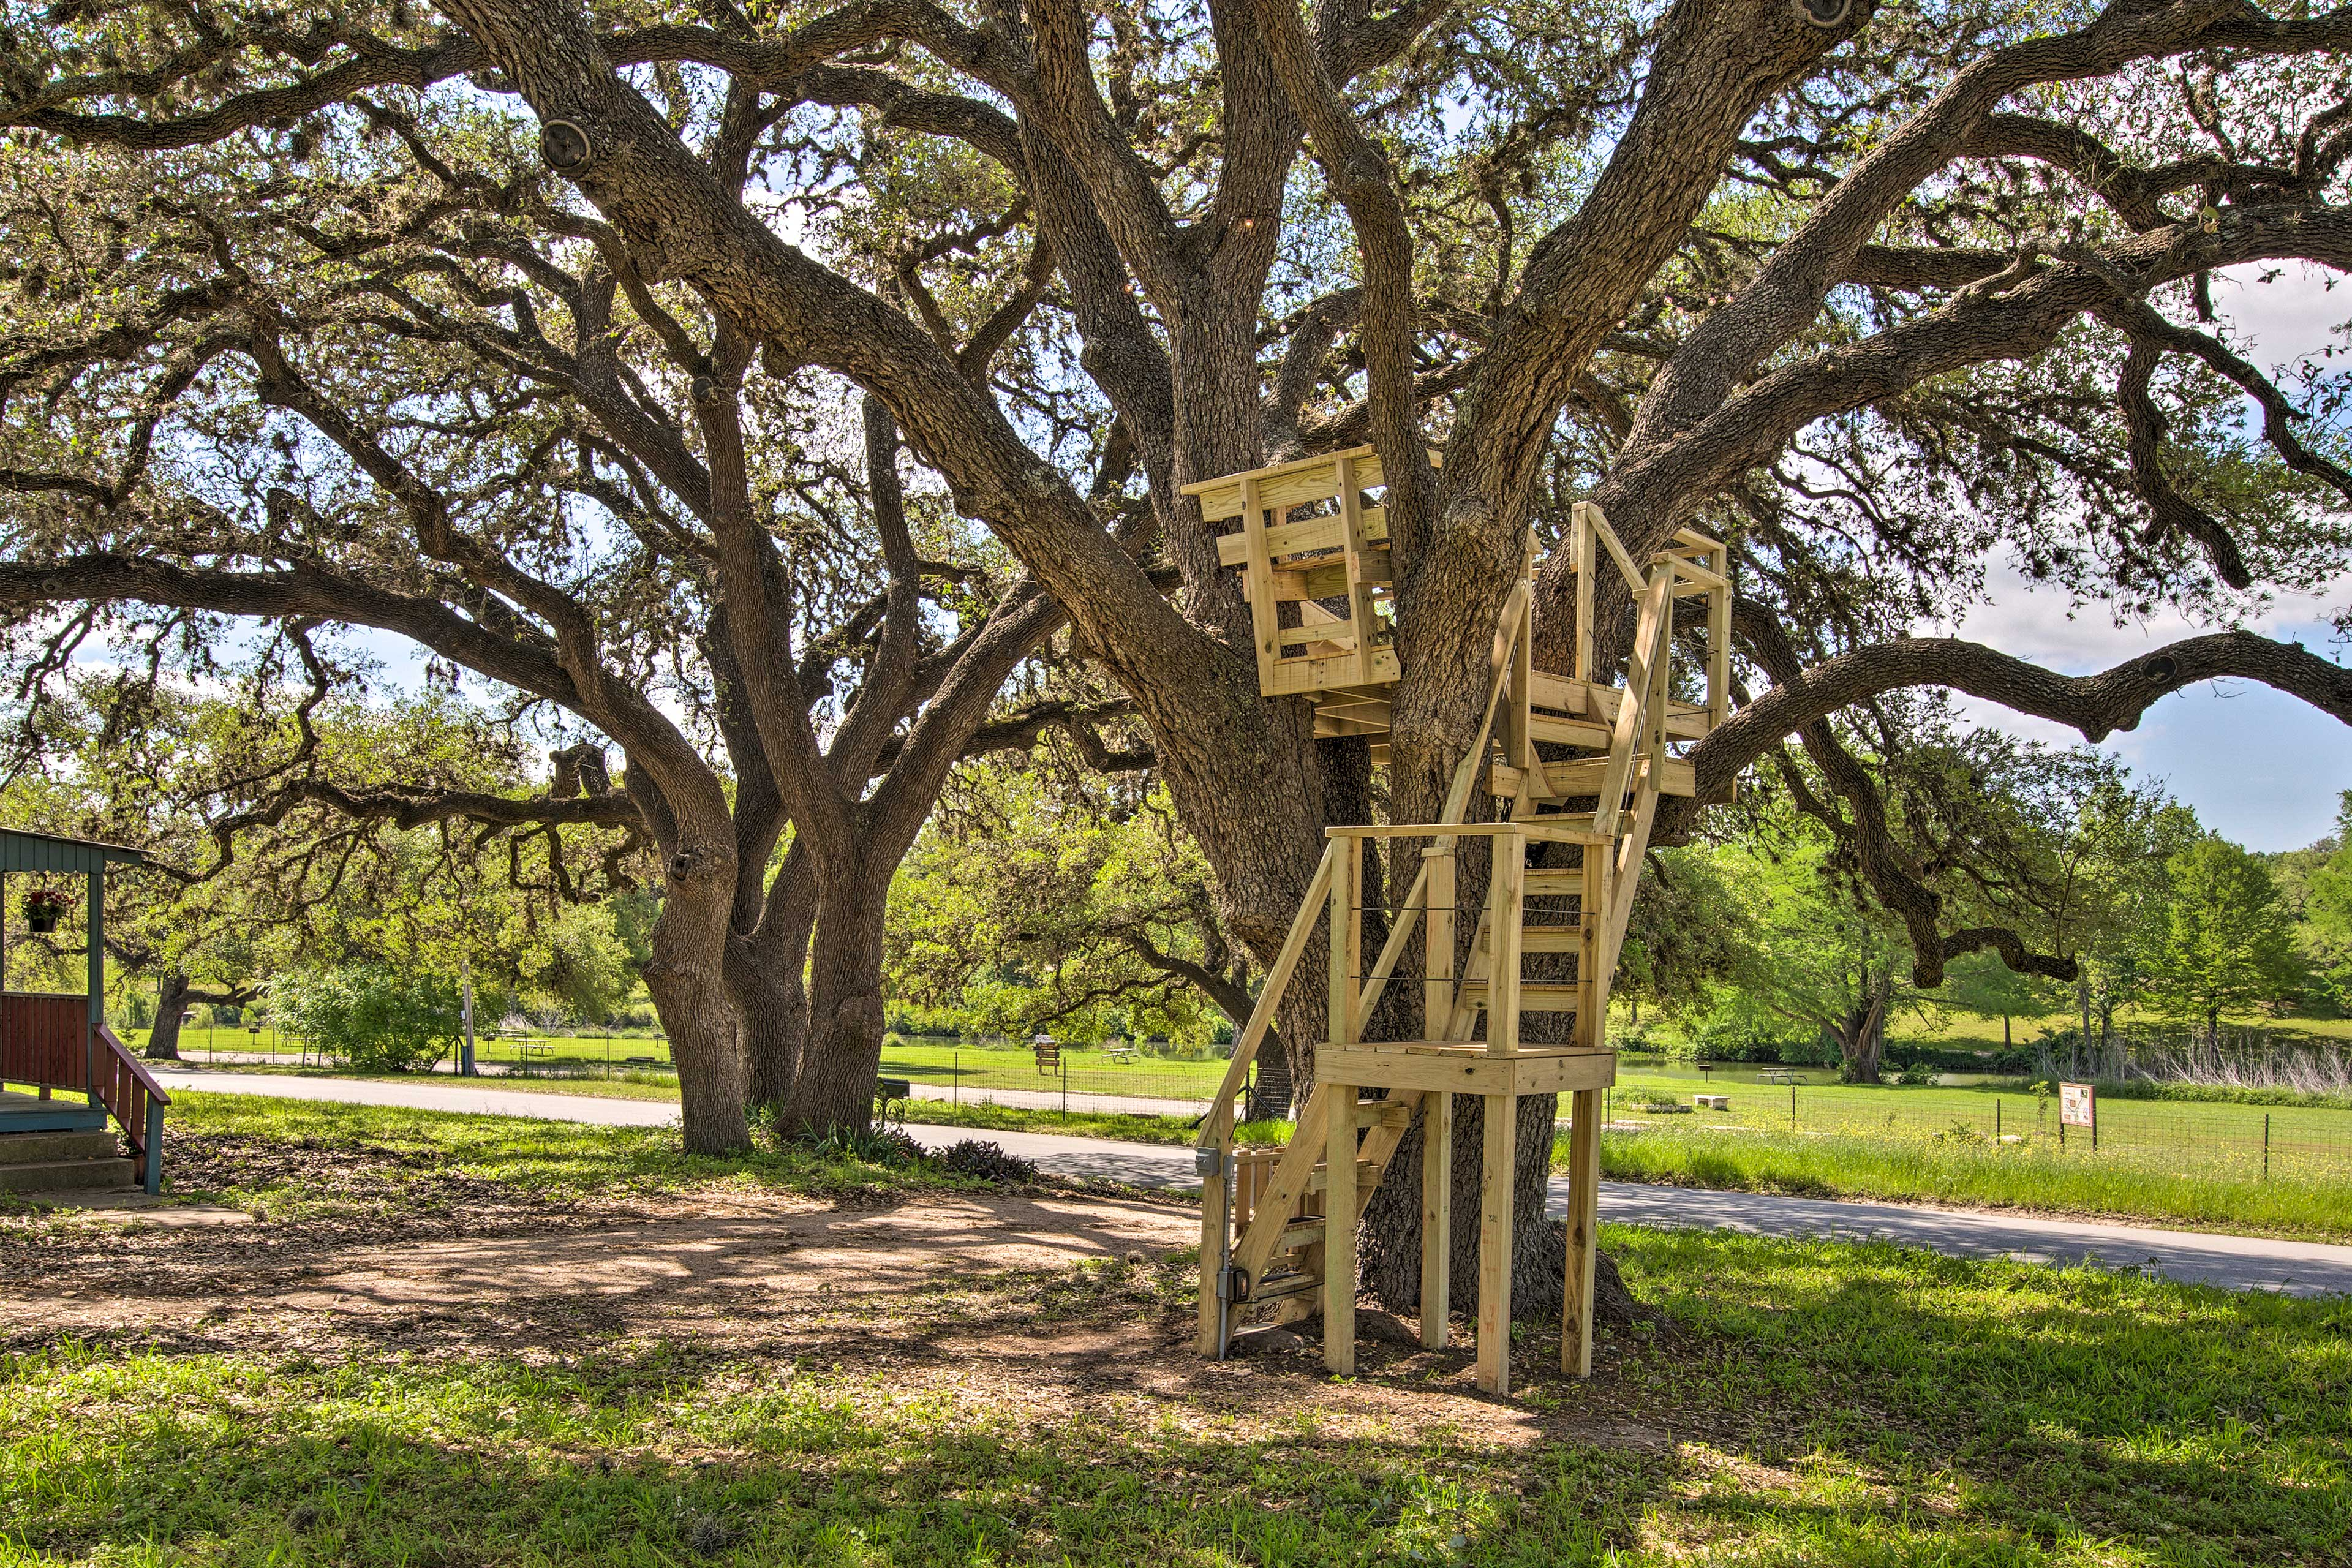 Climb the stairs up to the home's unique treehouse!